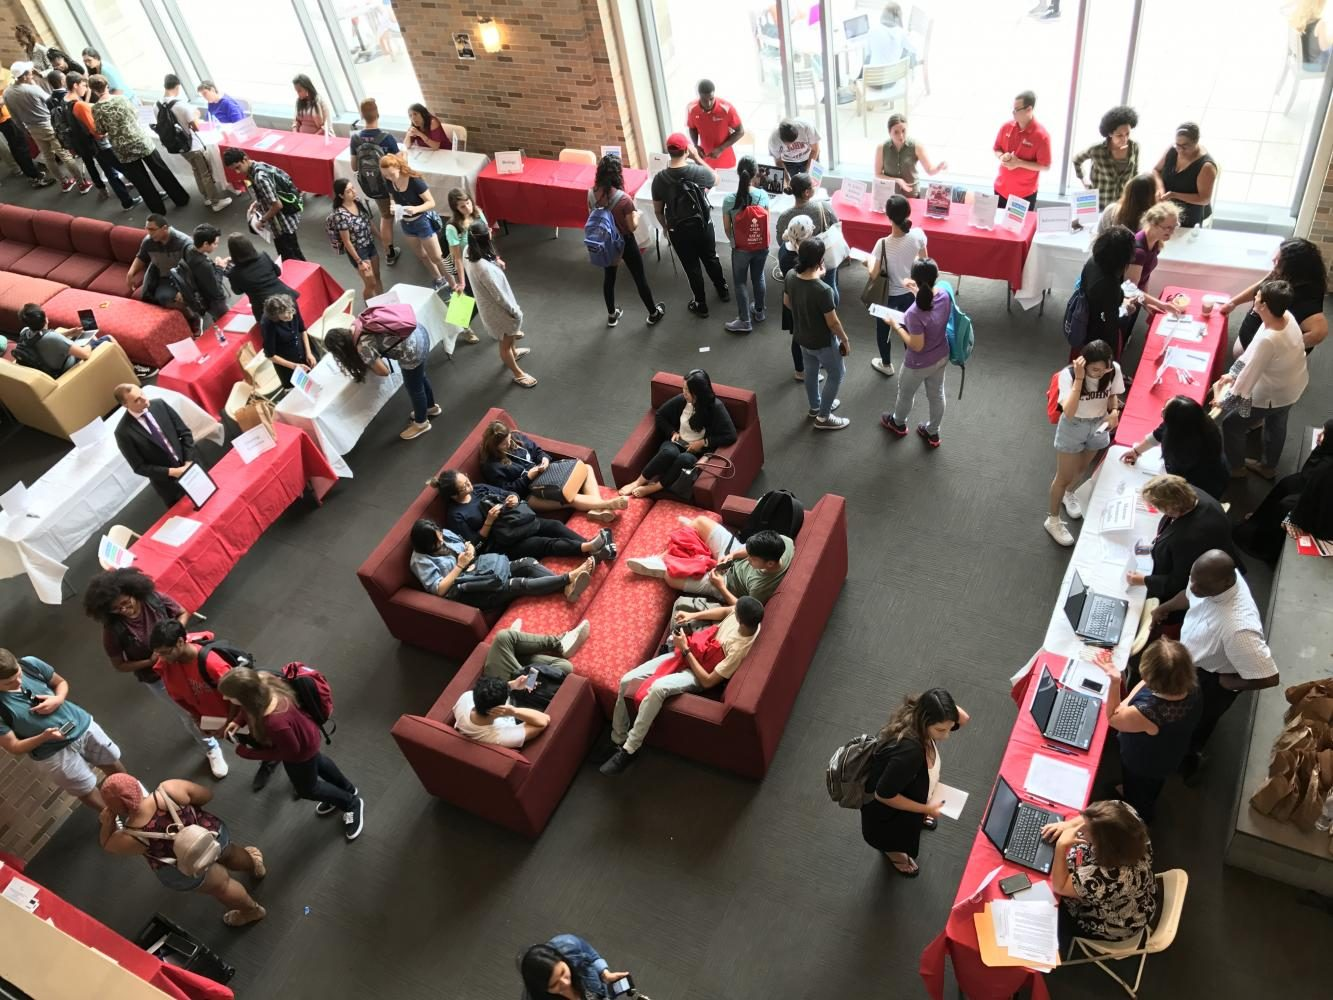 St. John's Seeks Student Workers at Employment Fair